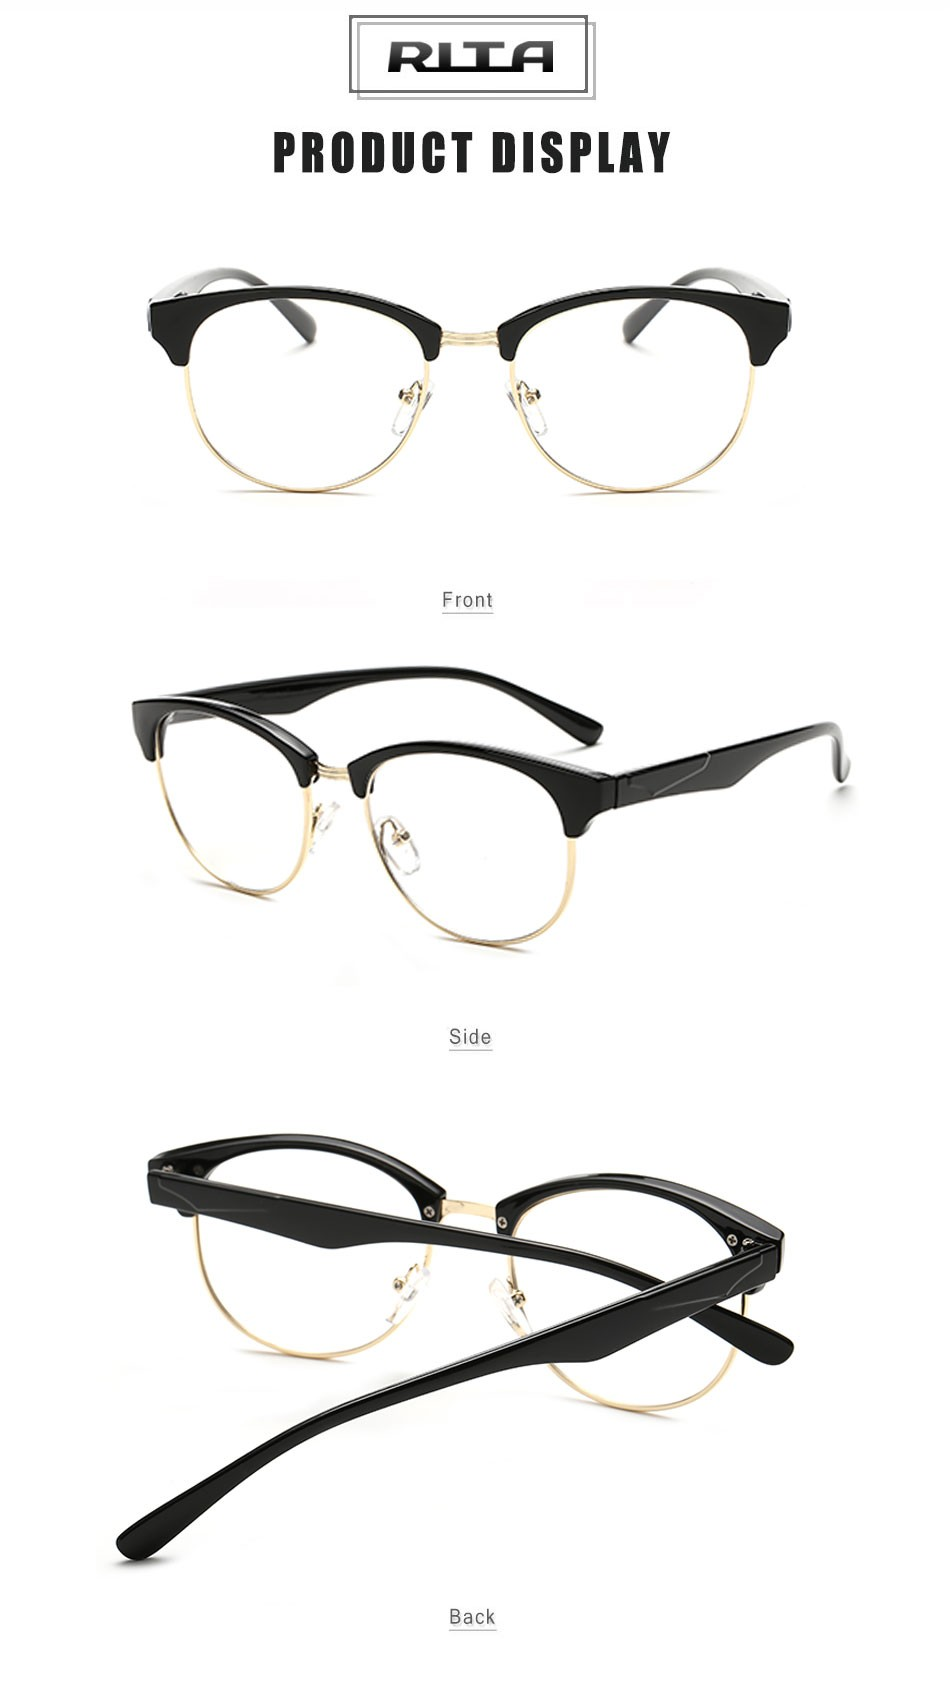 Rimless Glasses Round Face : Semi Rimless Glasses For Round Face Louisiana Bucket Brigade